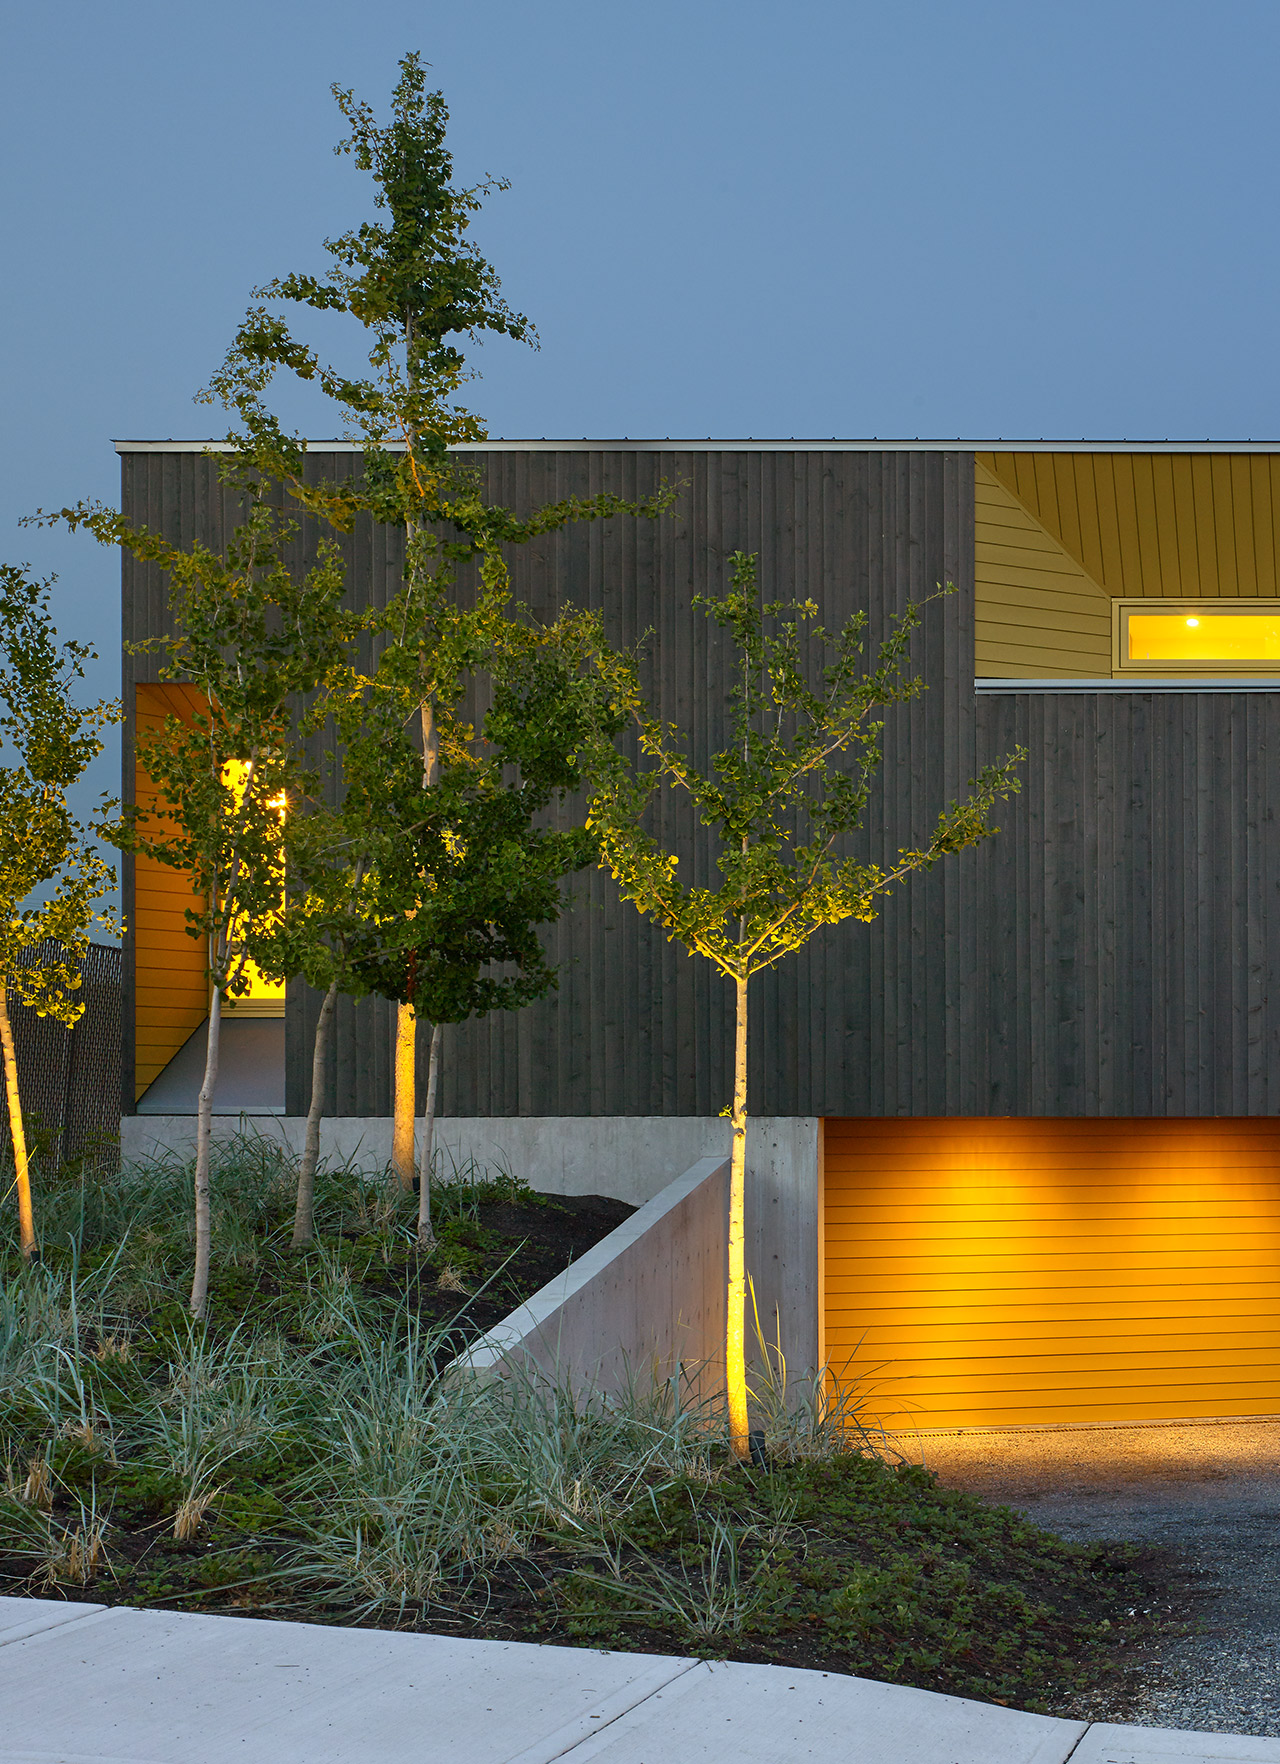 Front exterior view of modern home and landscaped garden.